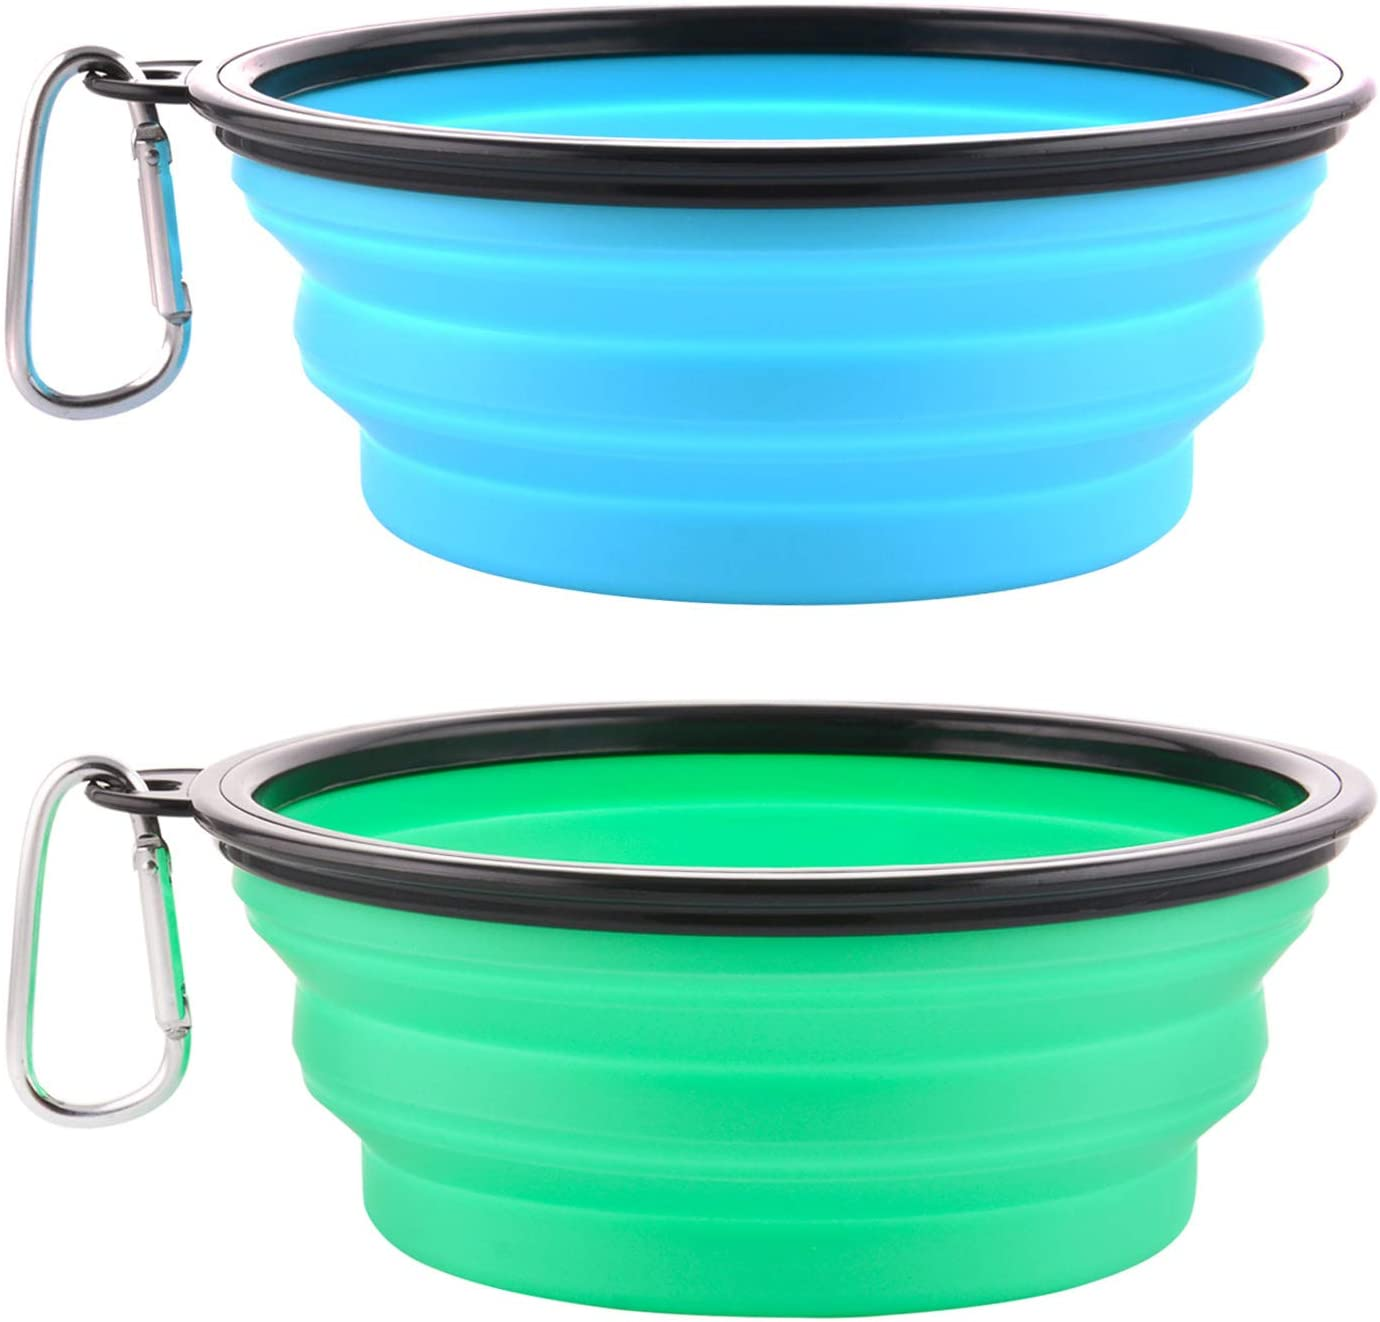 Guardians Large Collapsible Dog Bowls, 34oz Travel Water Food Bowls Portable Foldable Collapse Dishes with Carabiner Clip for Traveling, Hiking, Walking, 2 Pack (Light Blue + Light Green)